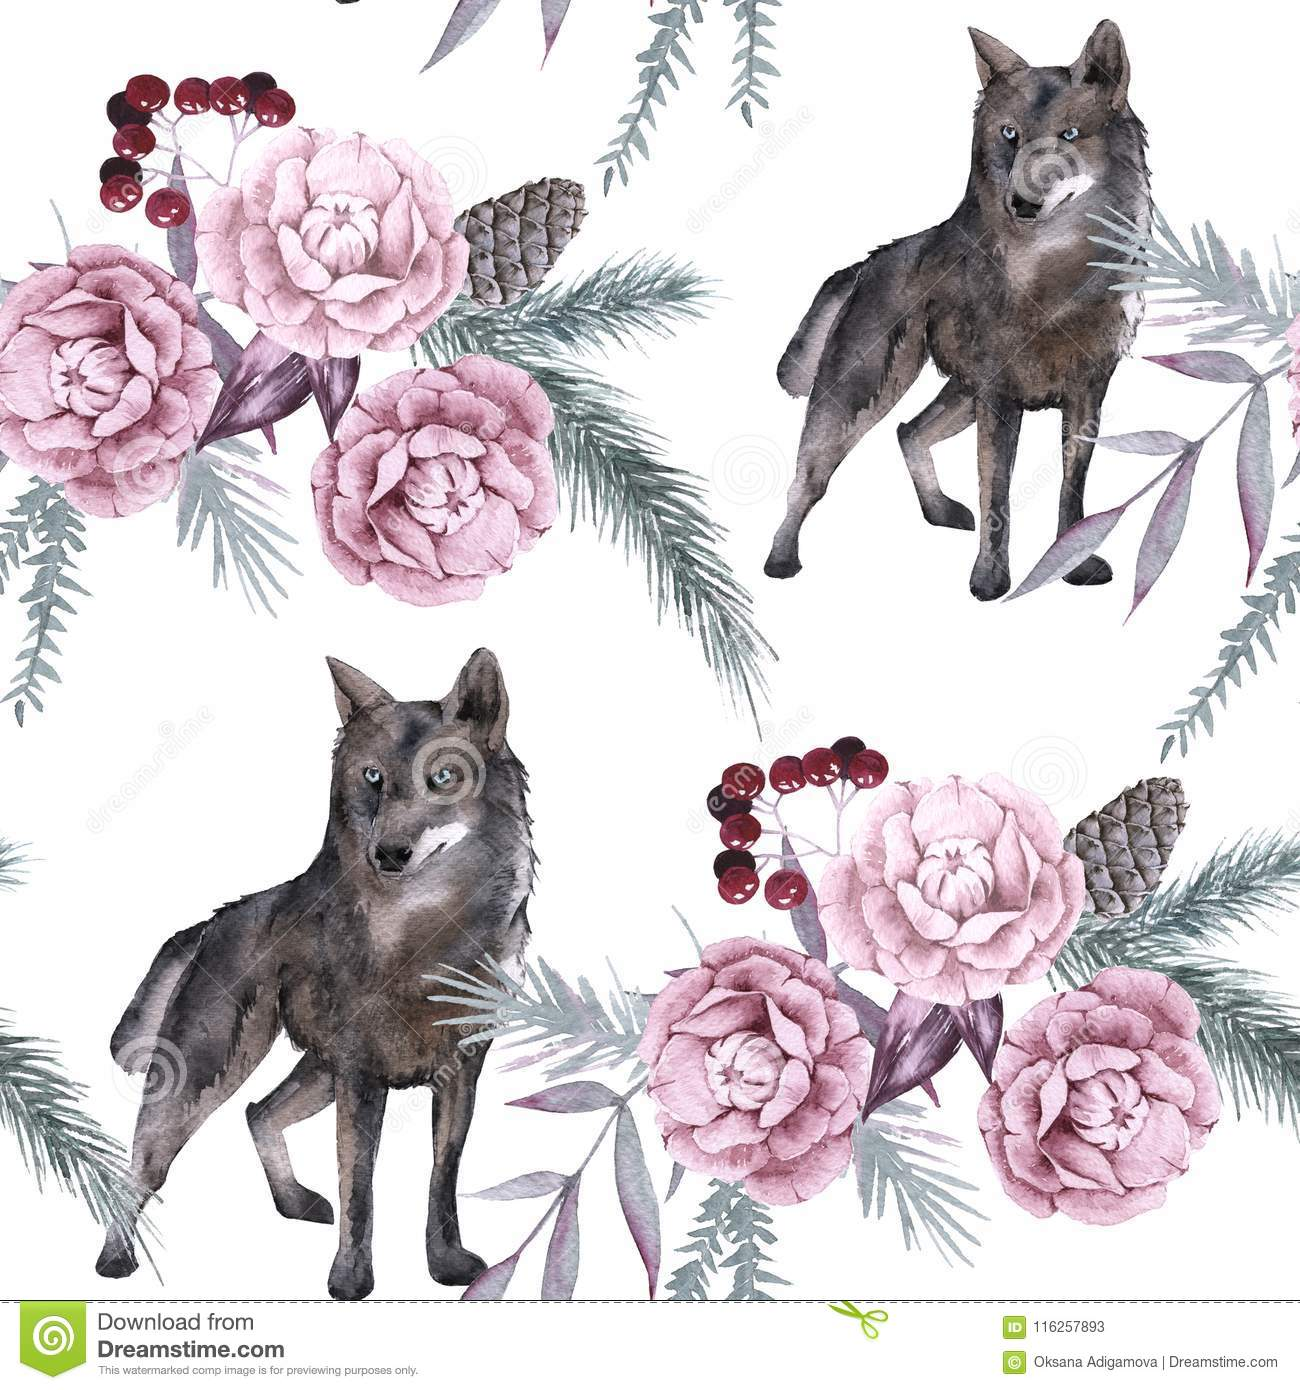 Background with a wolf and Siberian plants. Seamless pattern.